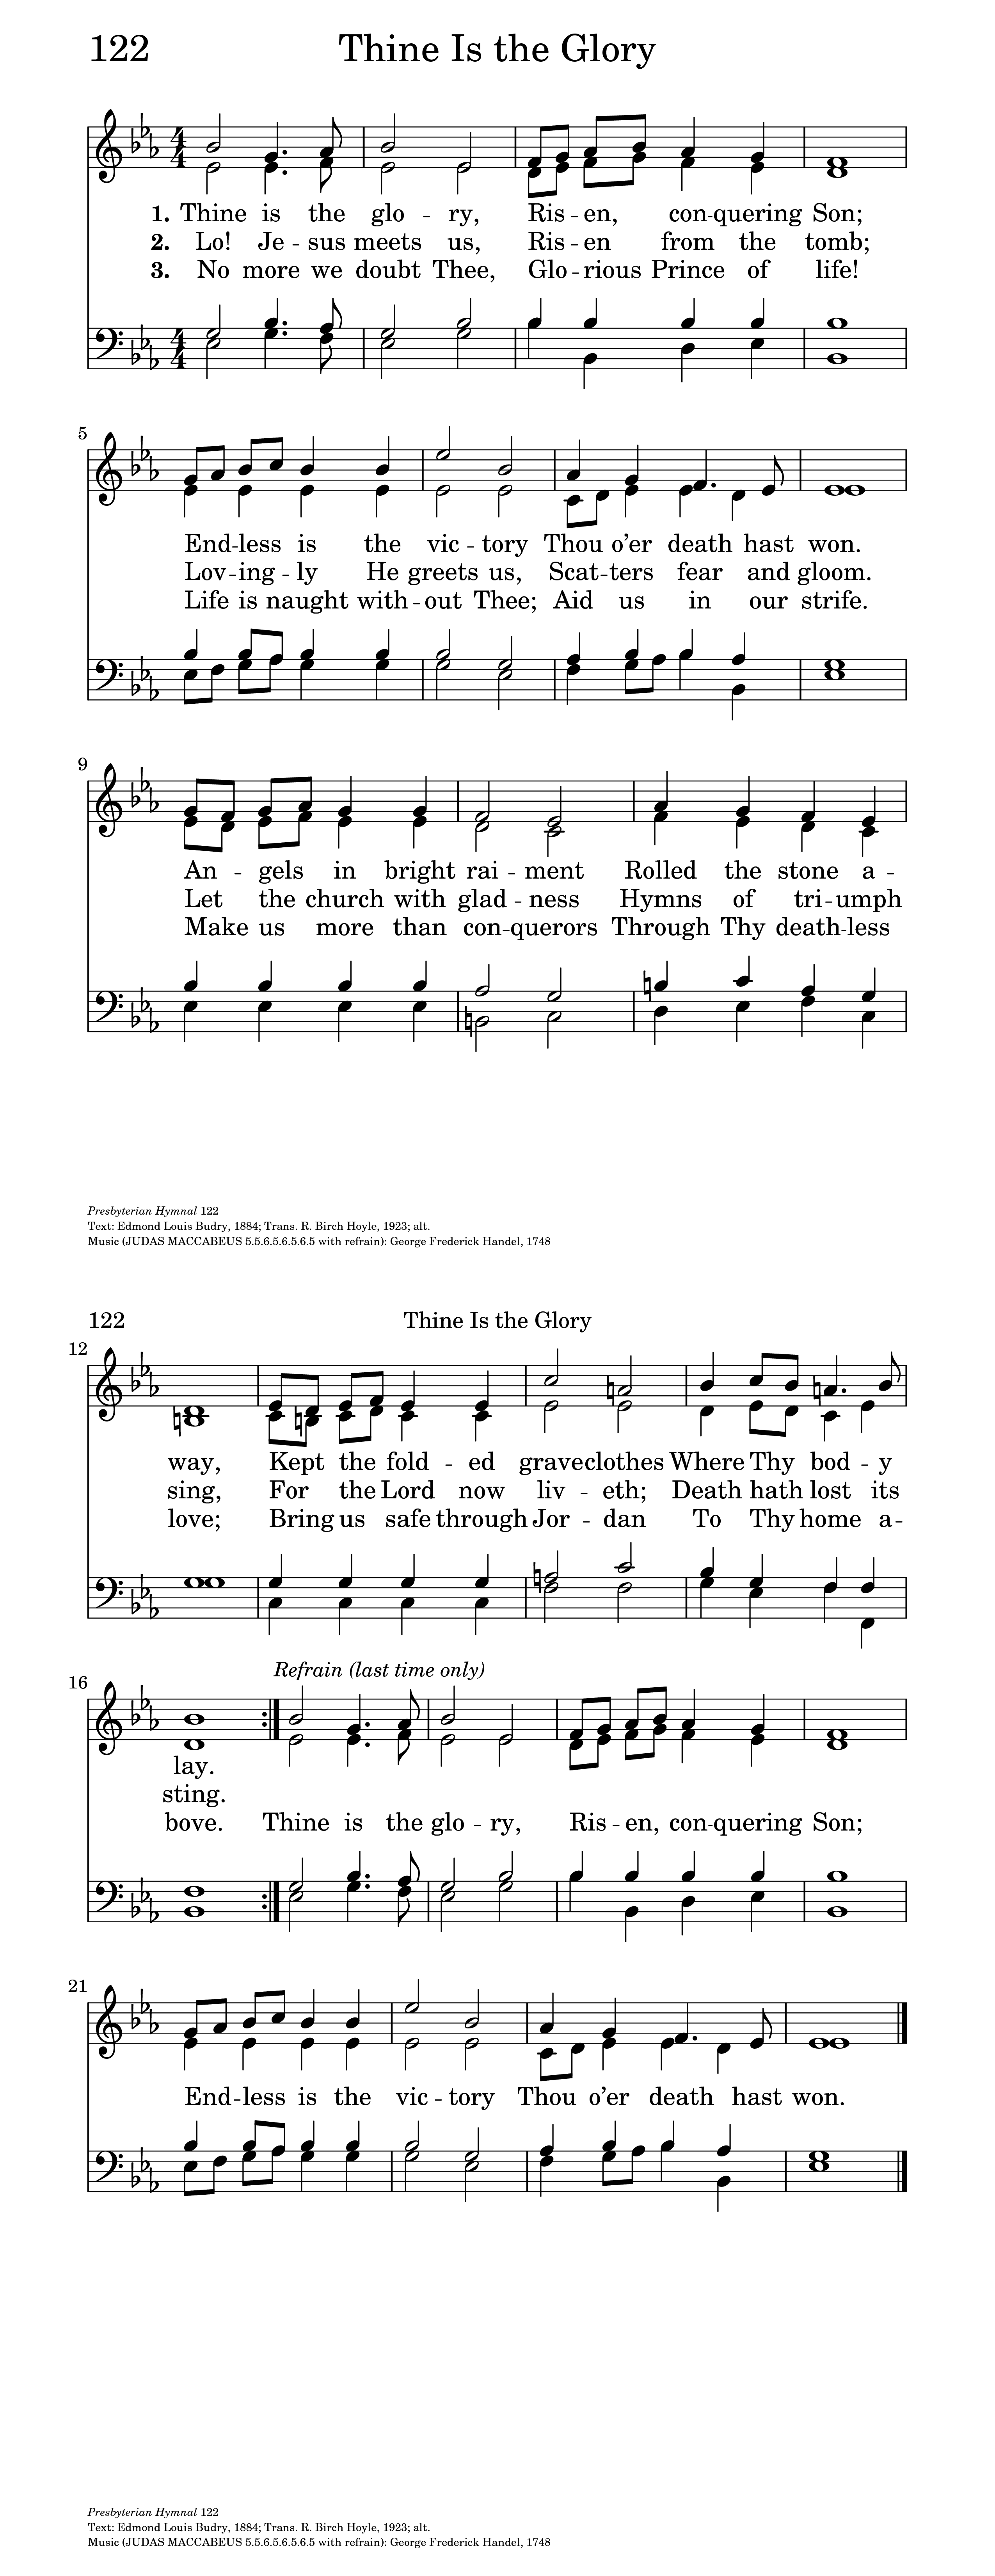 Thine is the glory hymnary general settings m4hsunfo